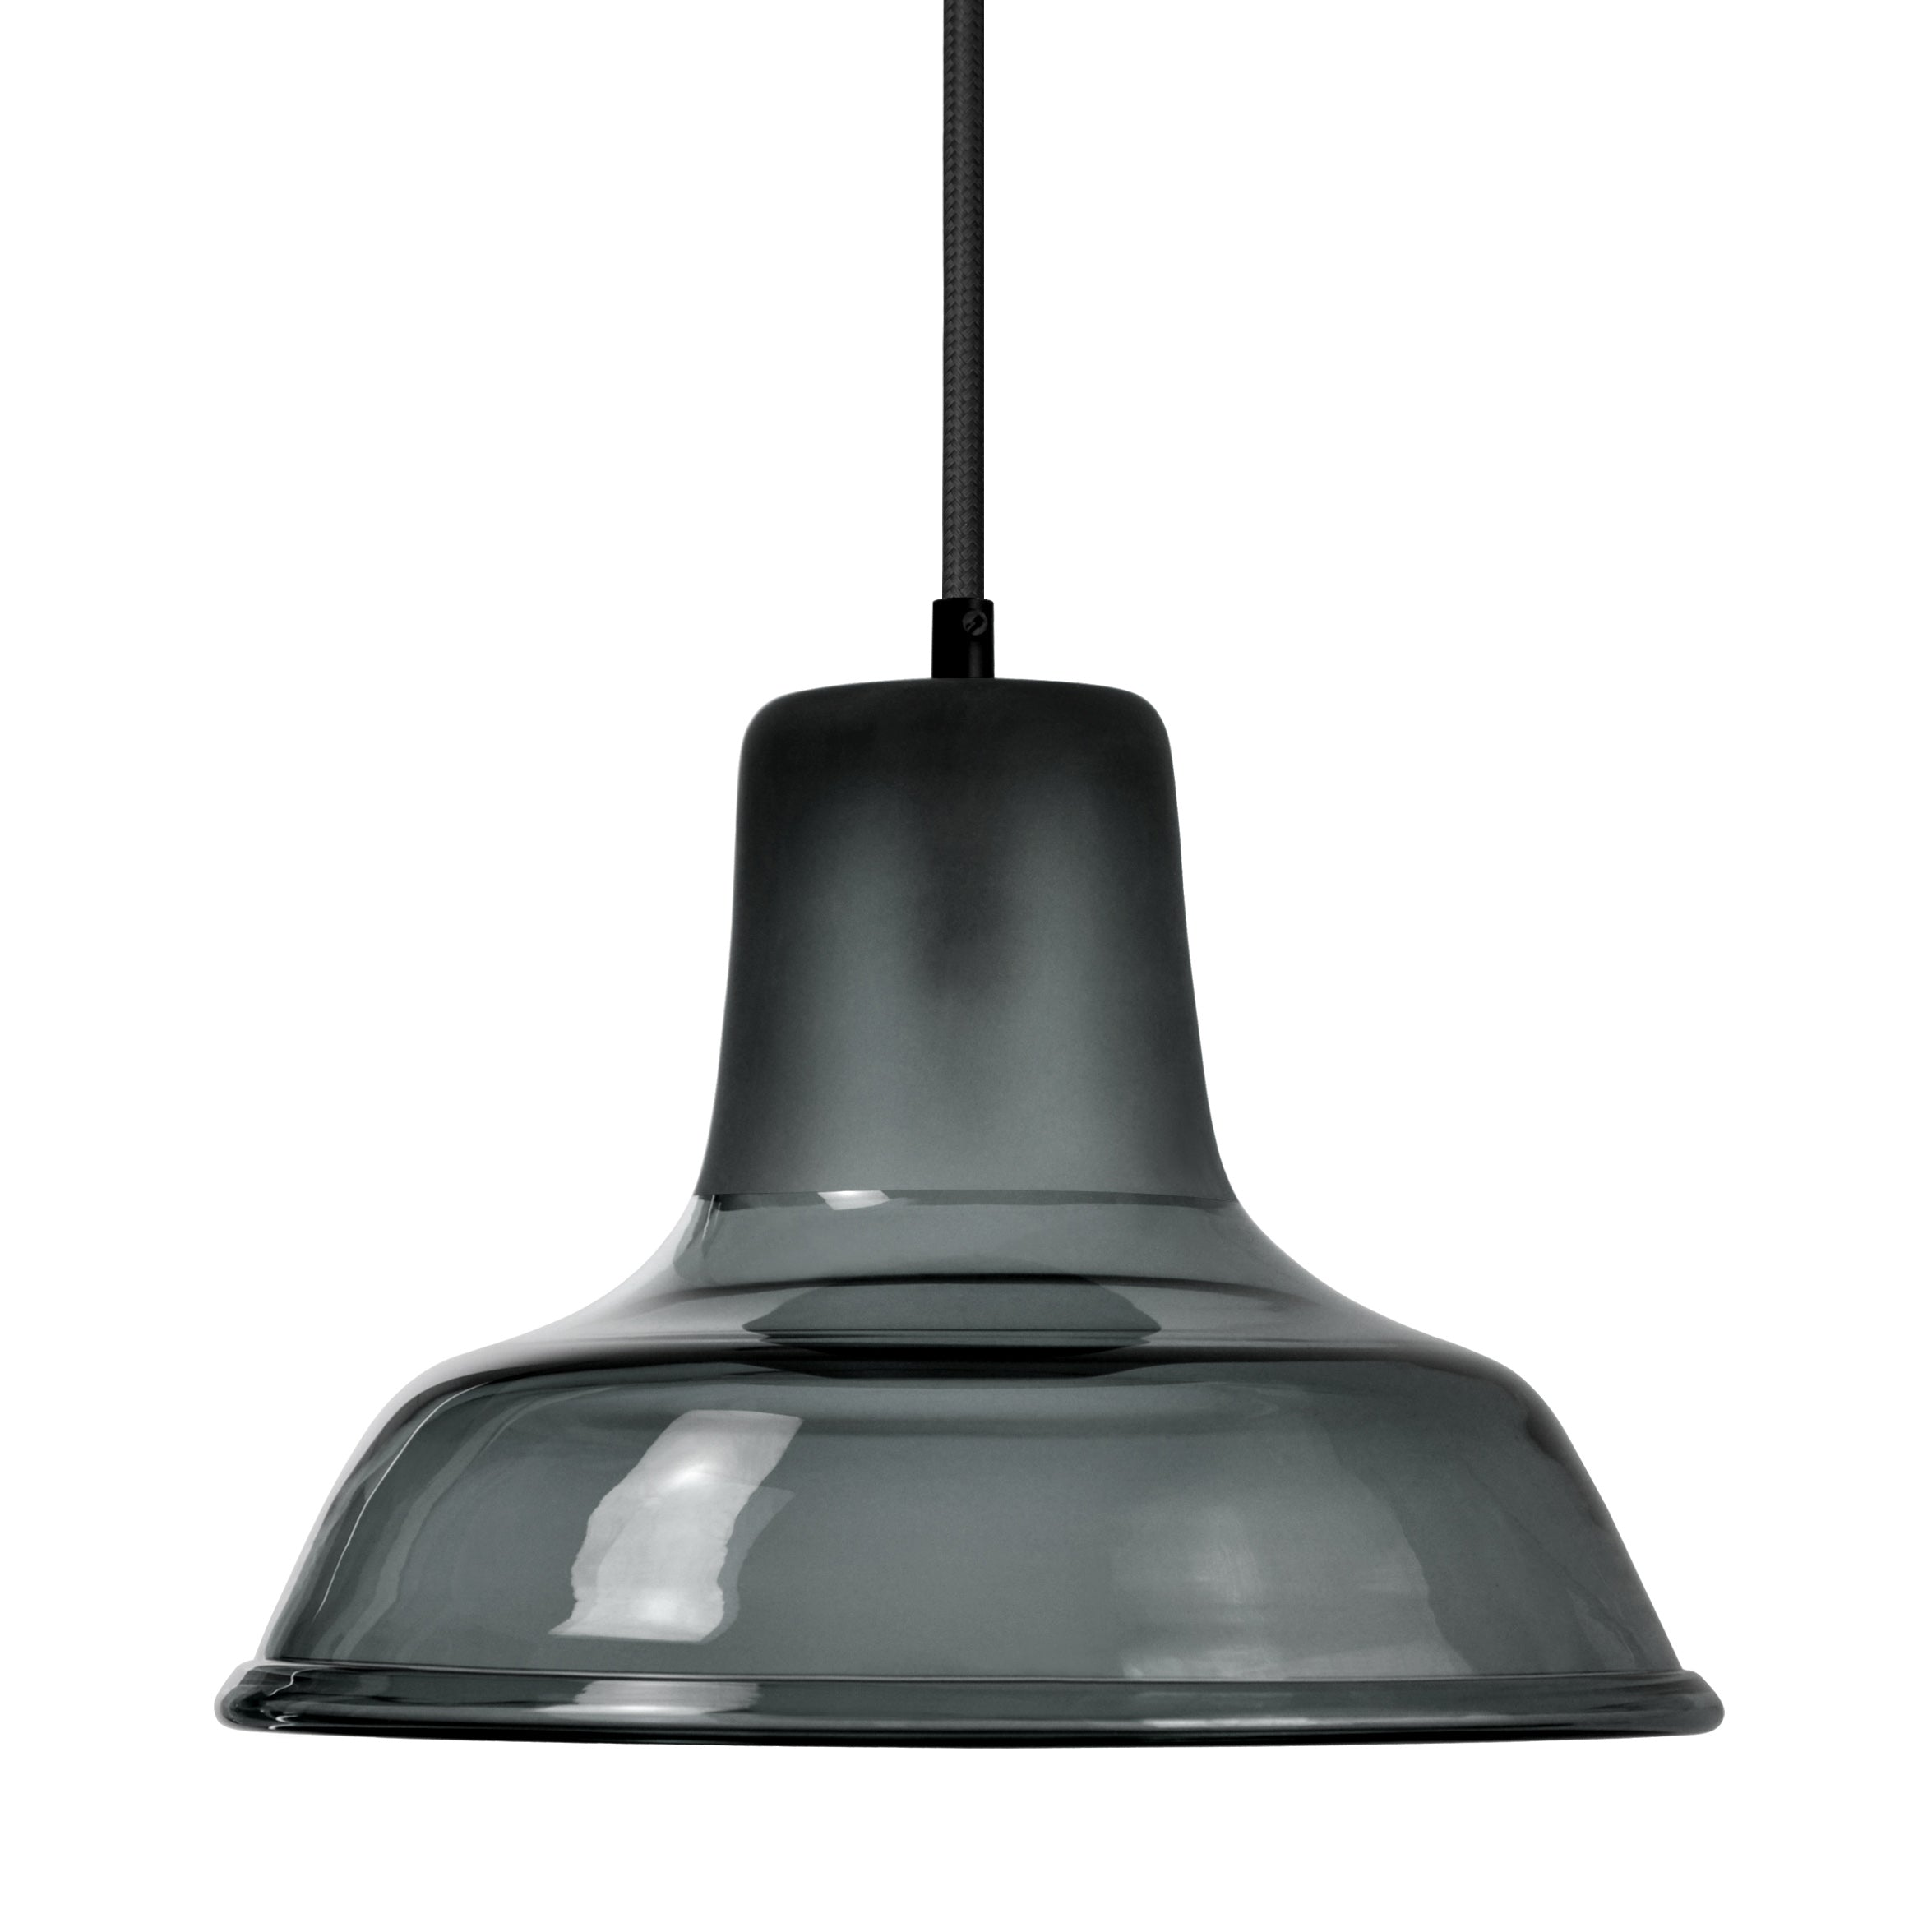 Mineheart Factory glass pendant light in blue smoke by Young & Battaglia from Warehouse Home